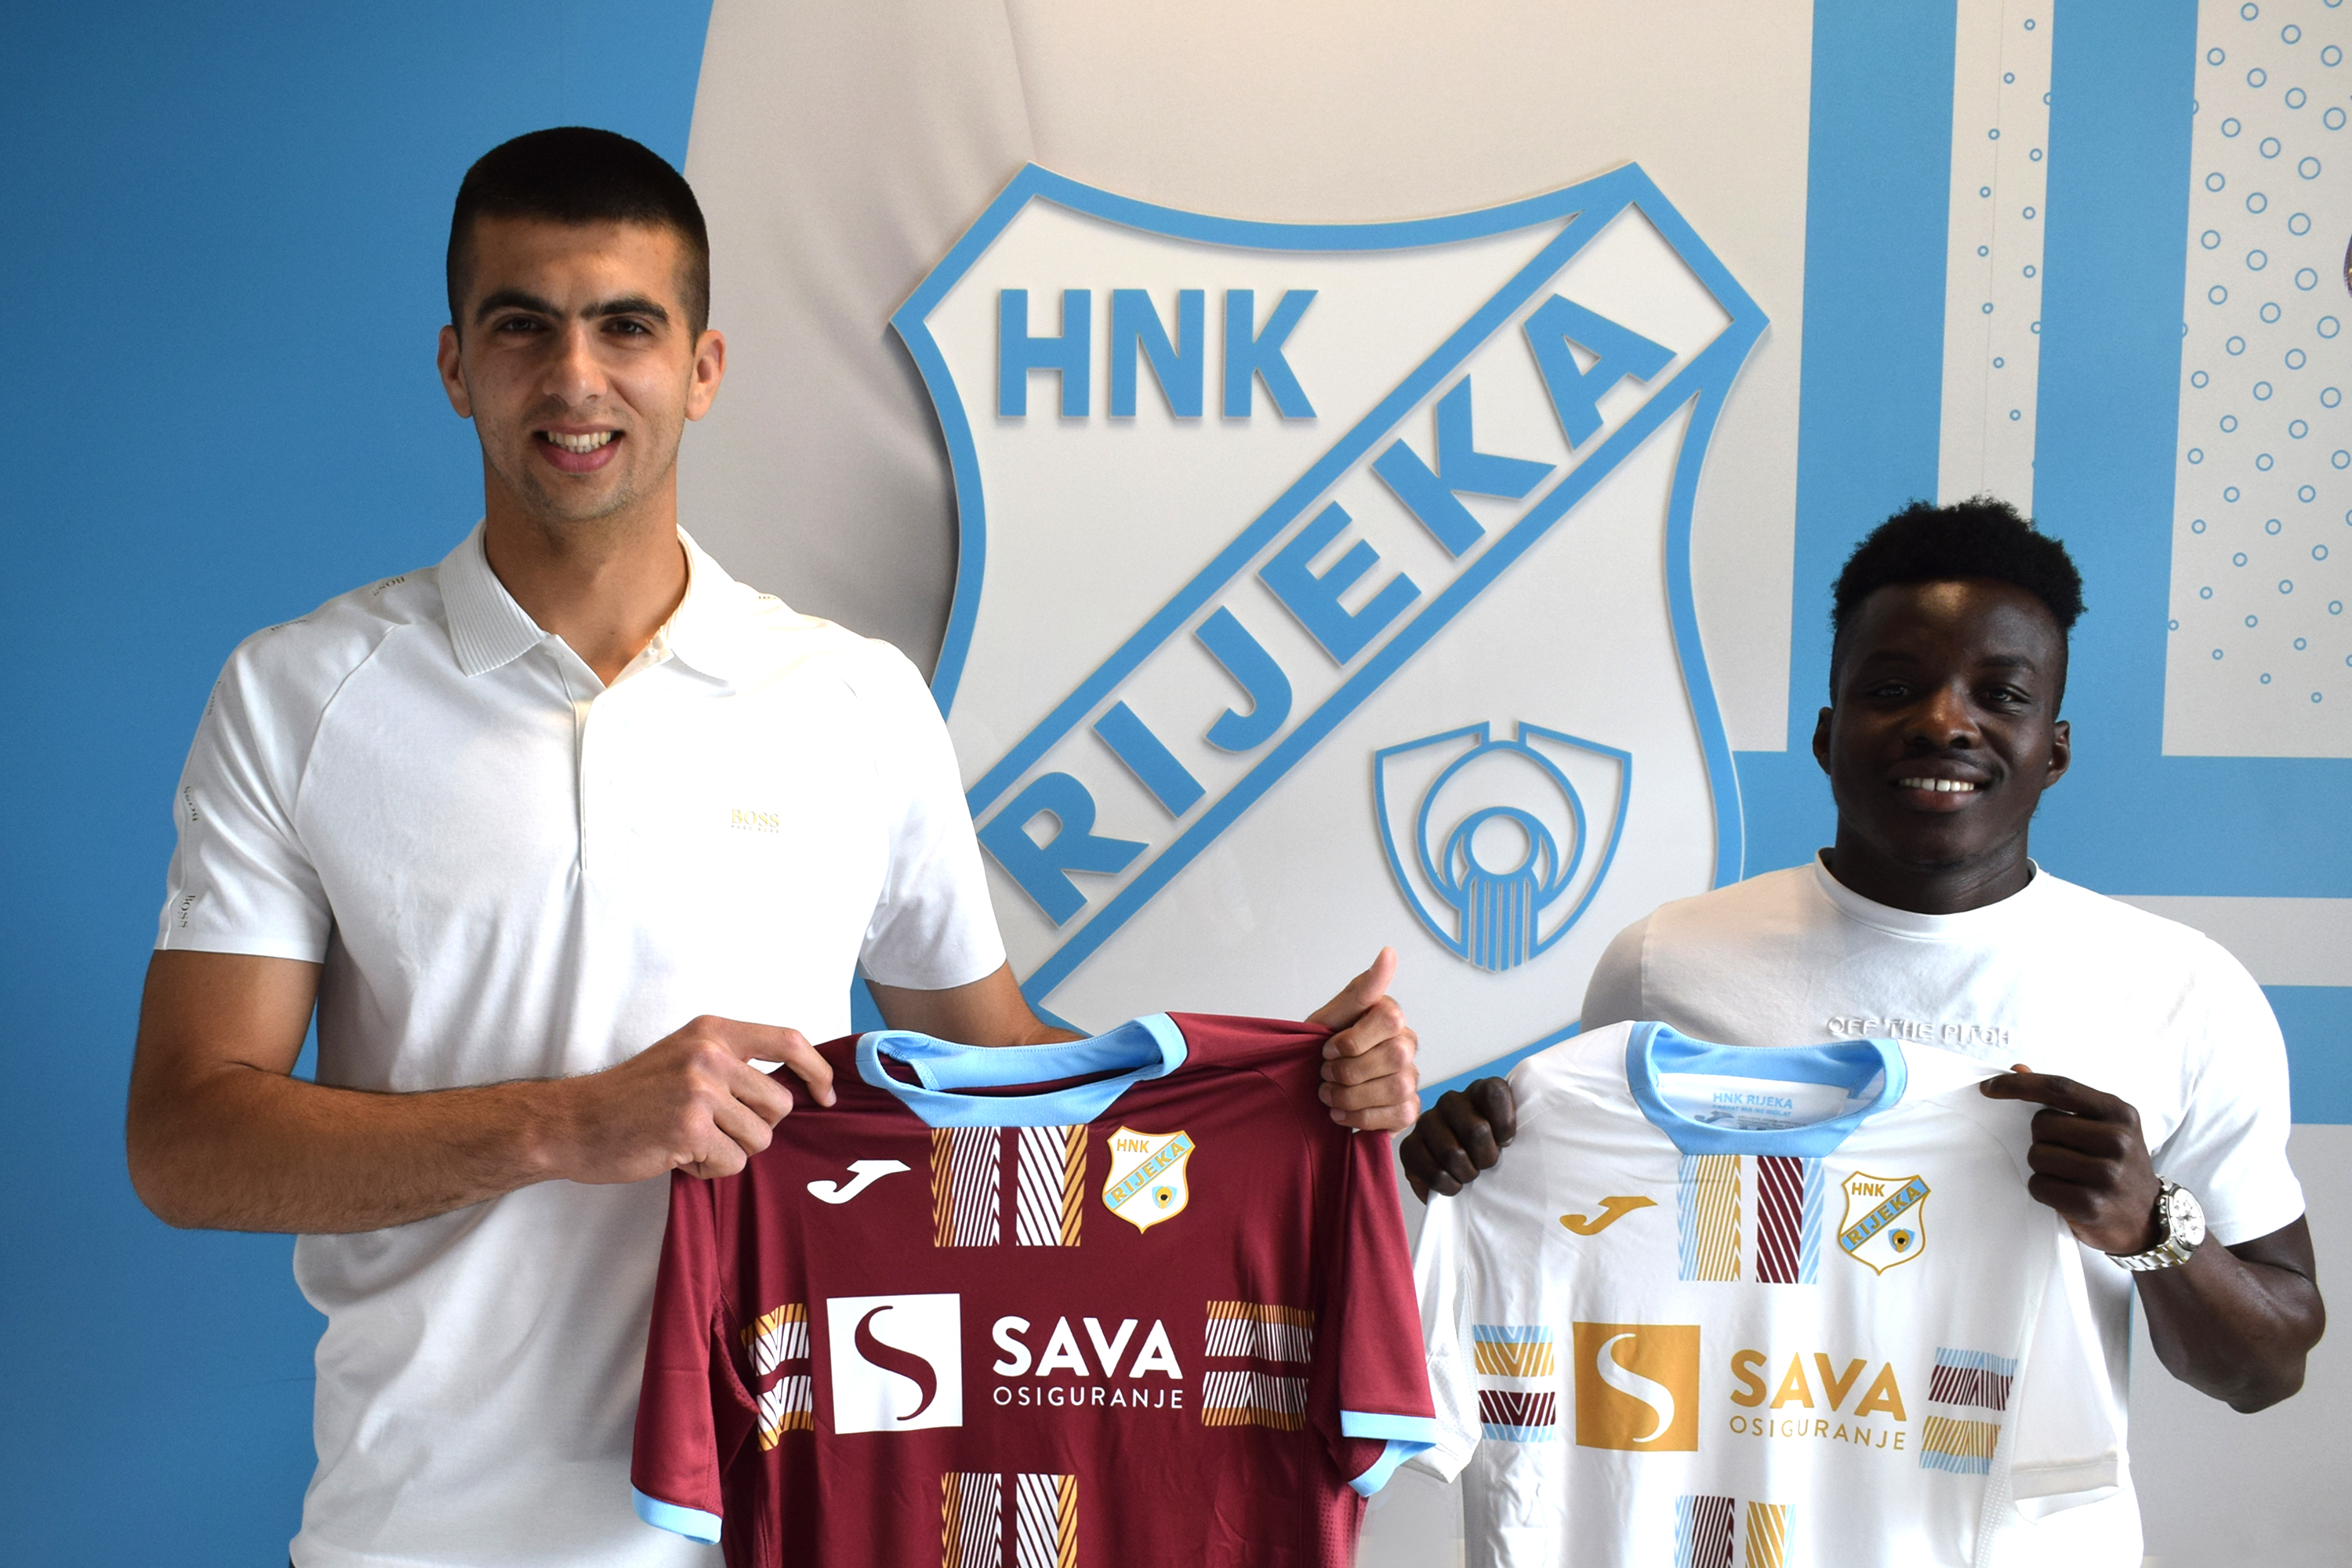 Watch Prince Obeng Ampem's first interview after completing a move from HNK Sibenik to HNK Rijeka